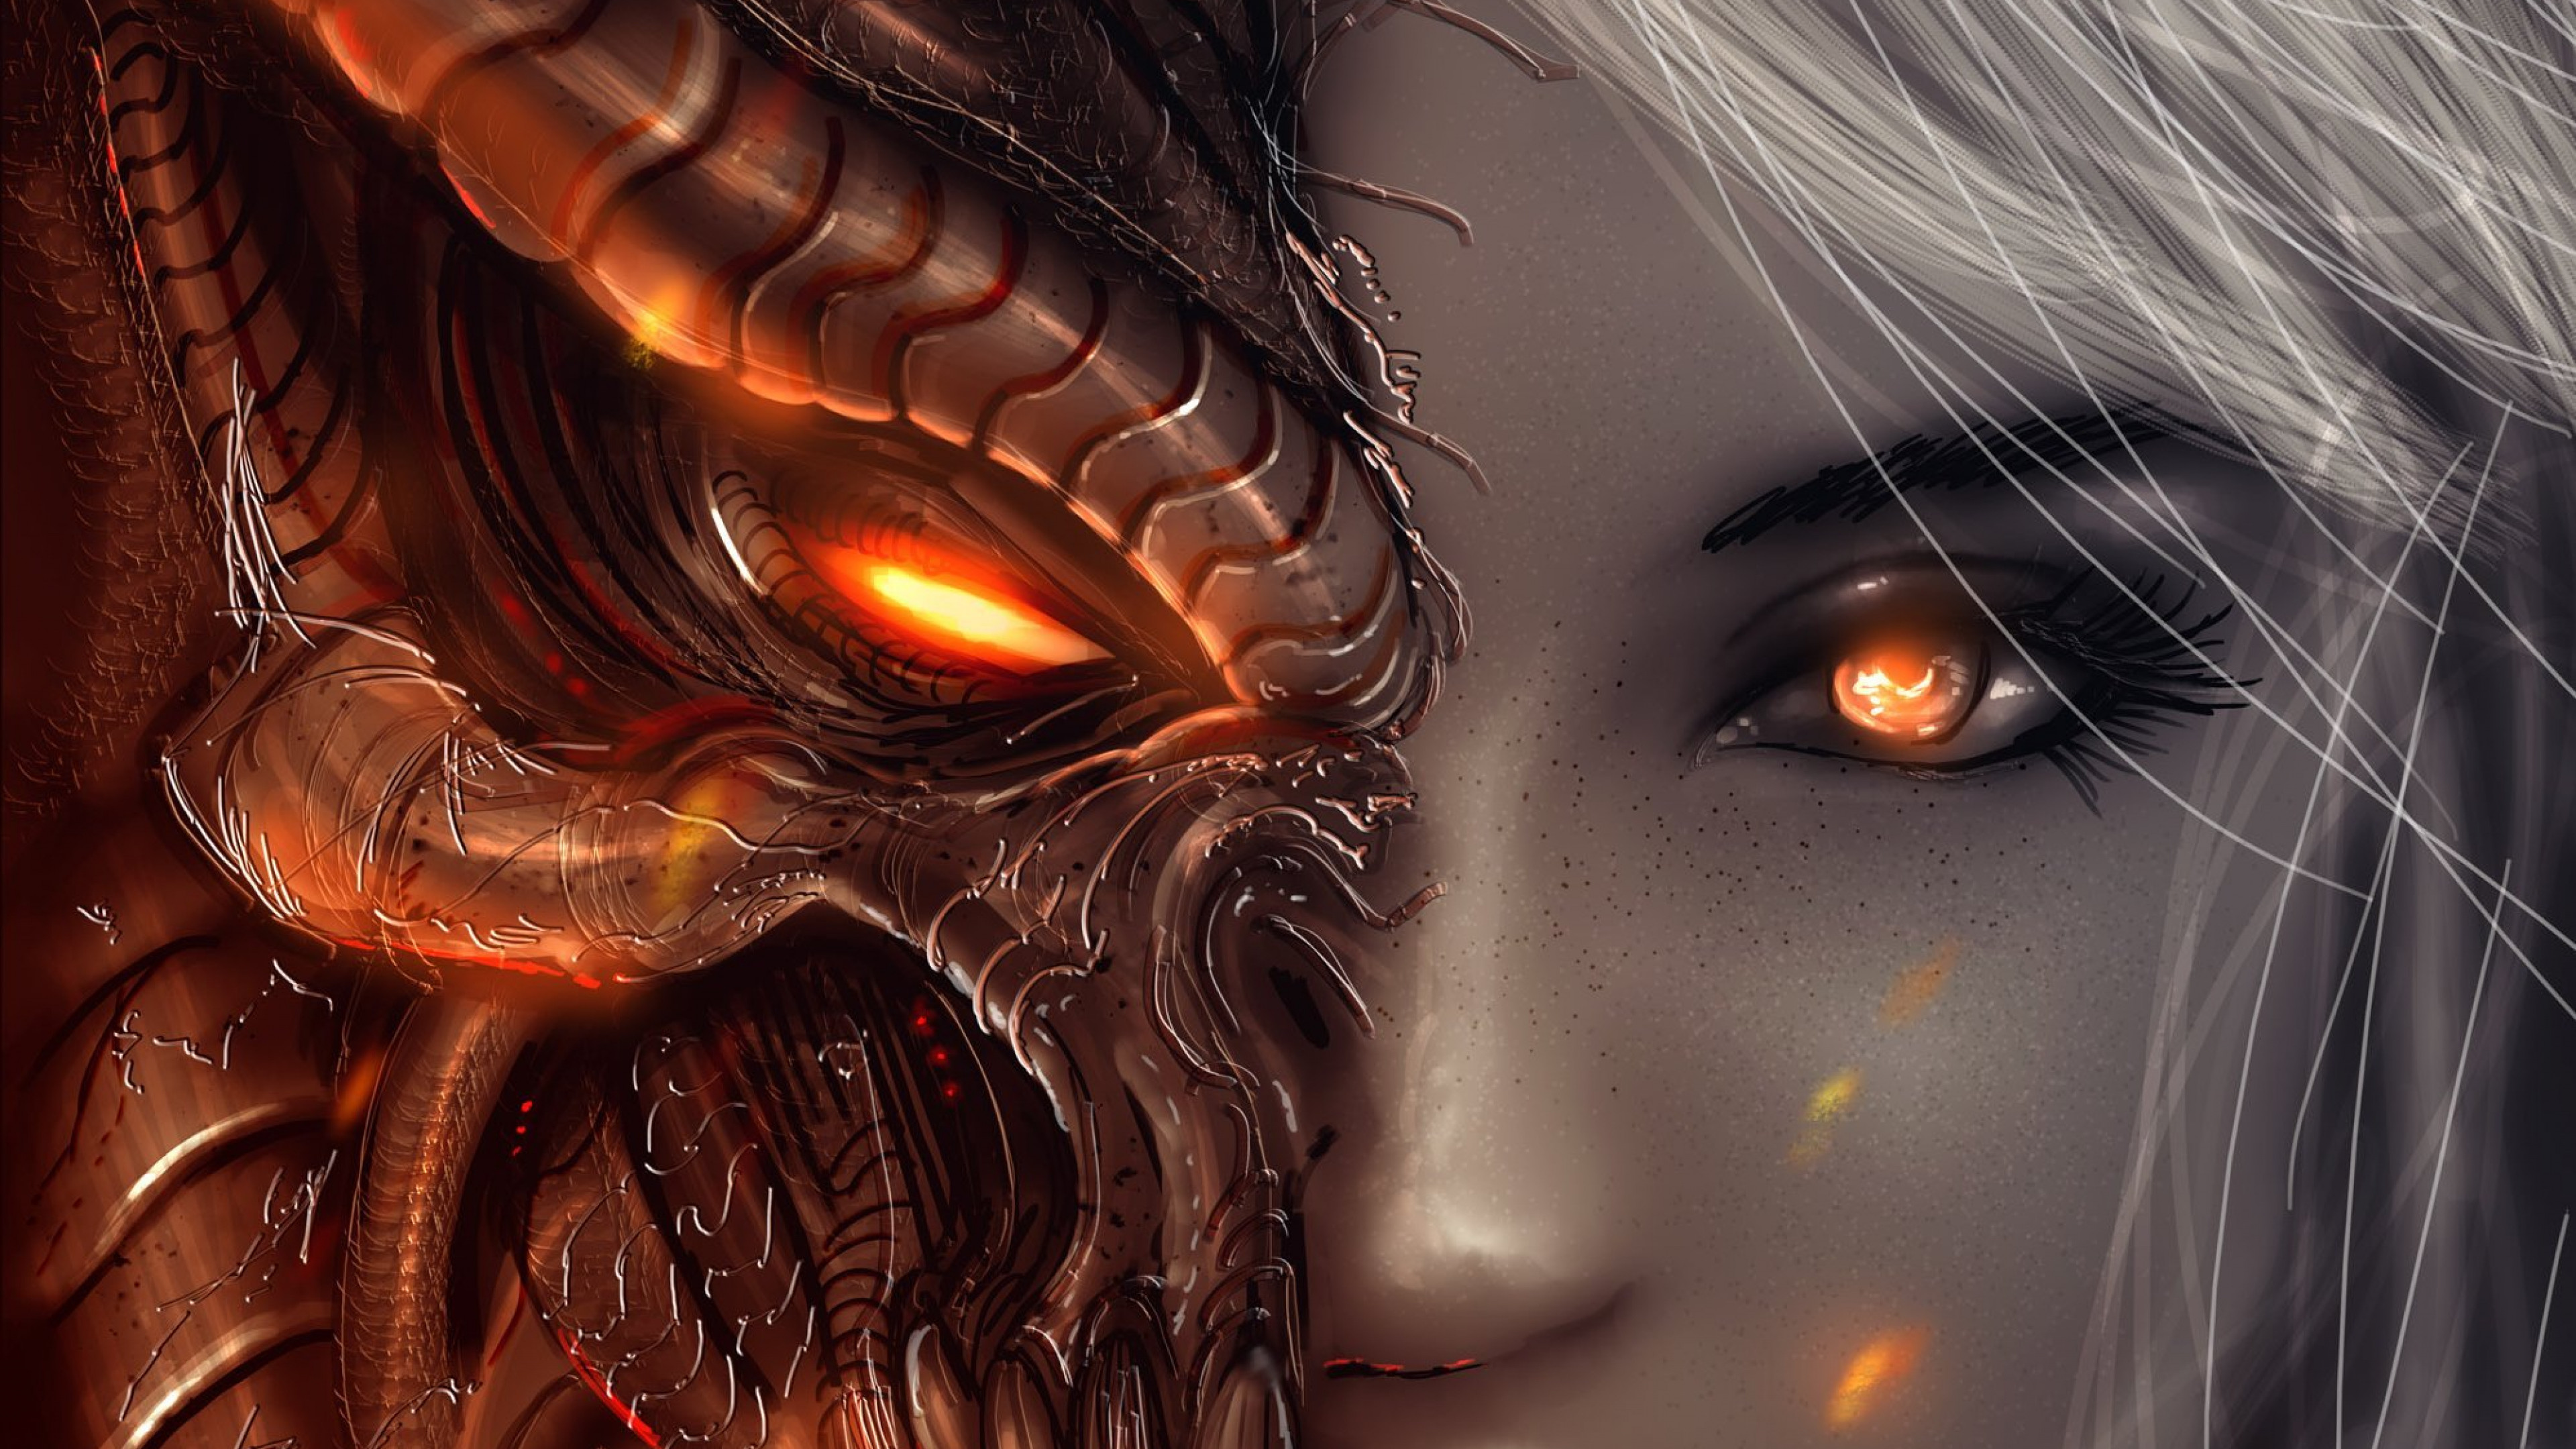 3840x2160  Wallpaper diablo 3, girl, art, angels, demons